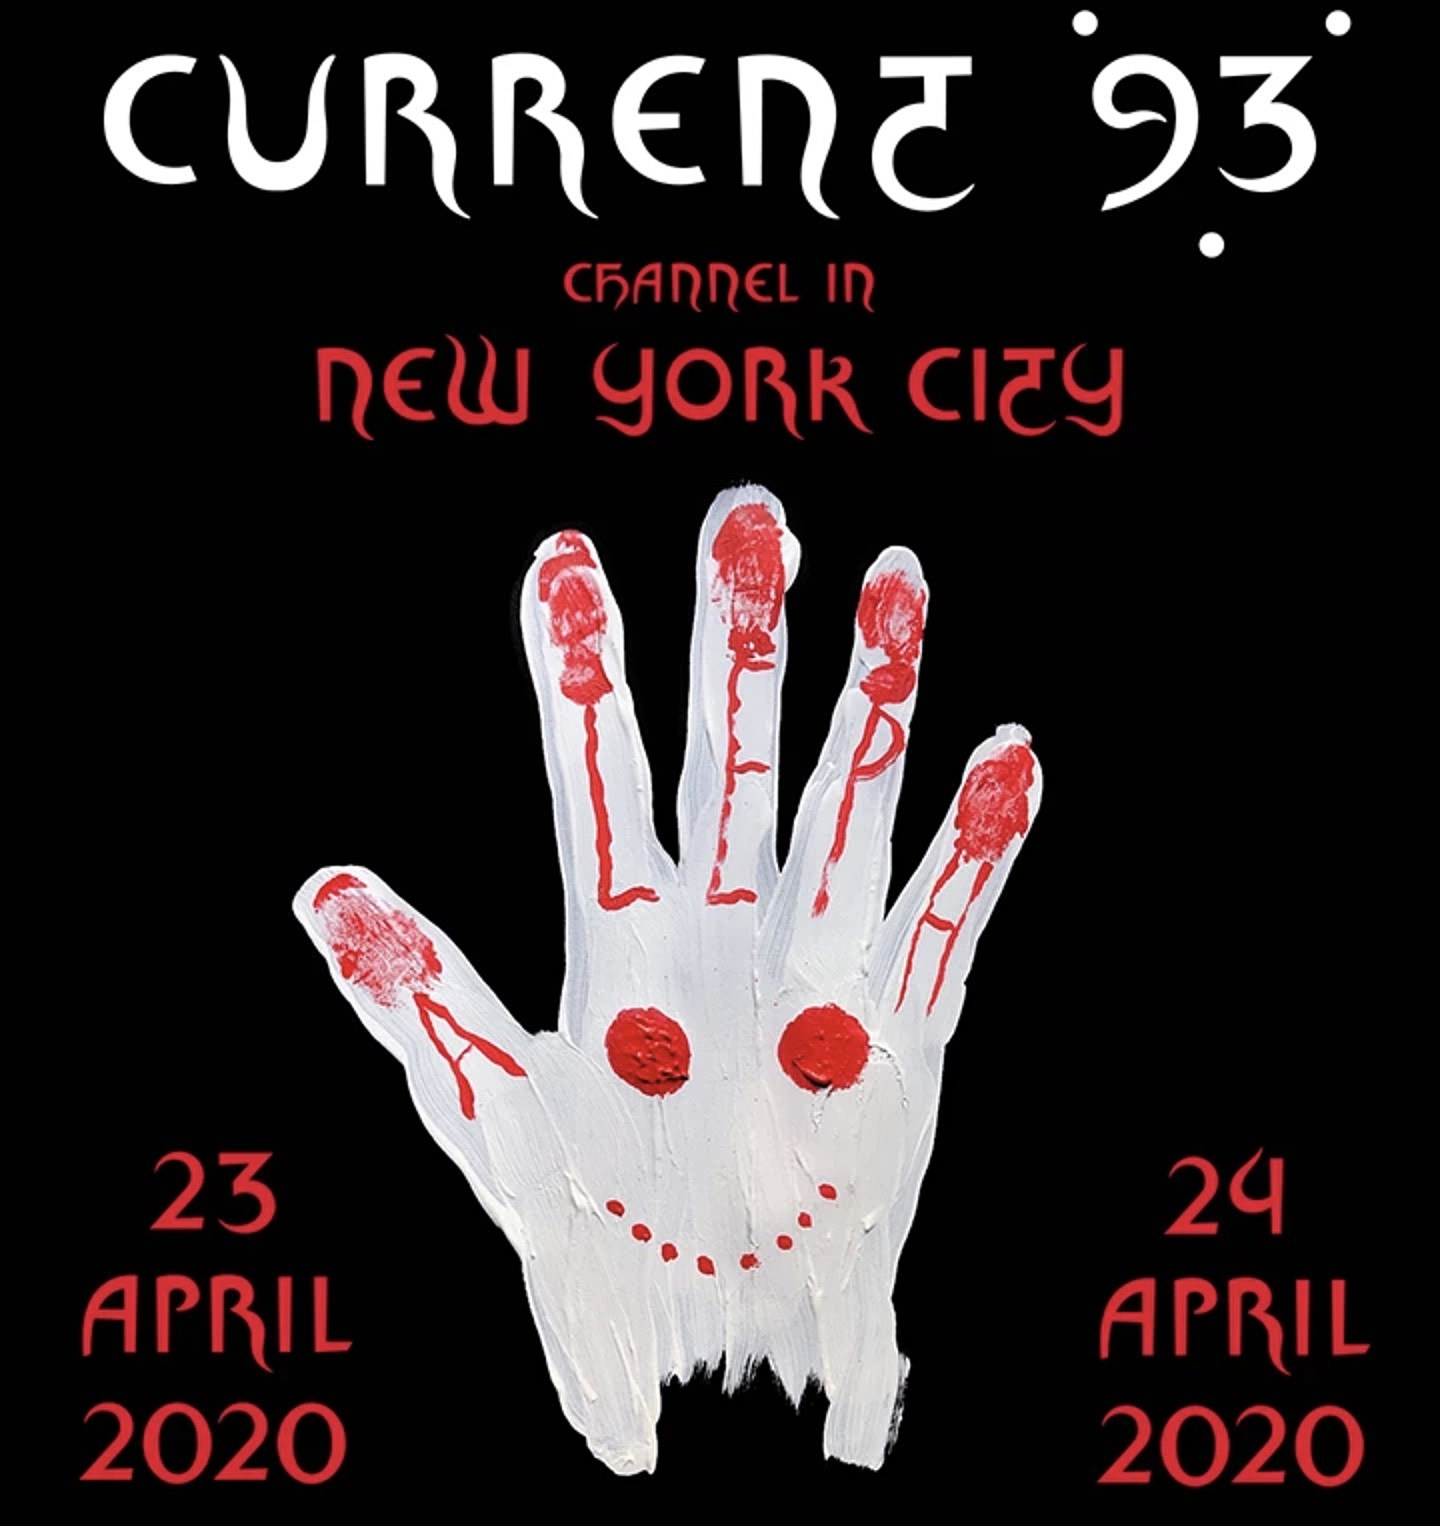 Nyc Parking Calendar 2020 Current 93 schedule rare NYC shows (again, finally)